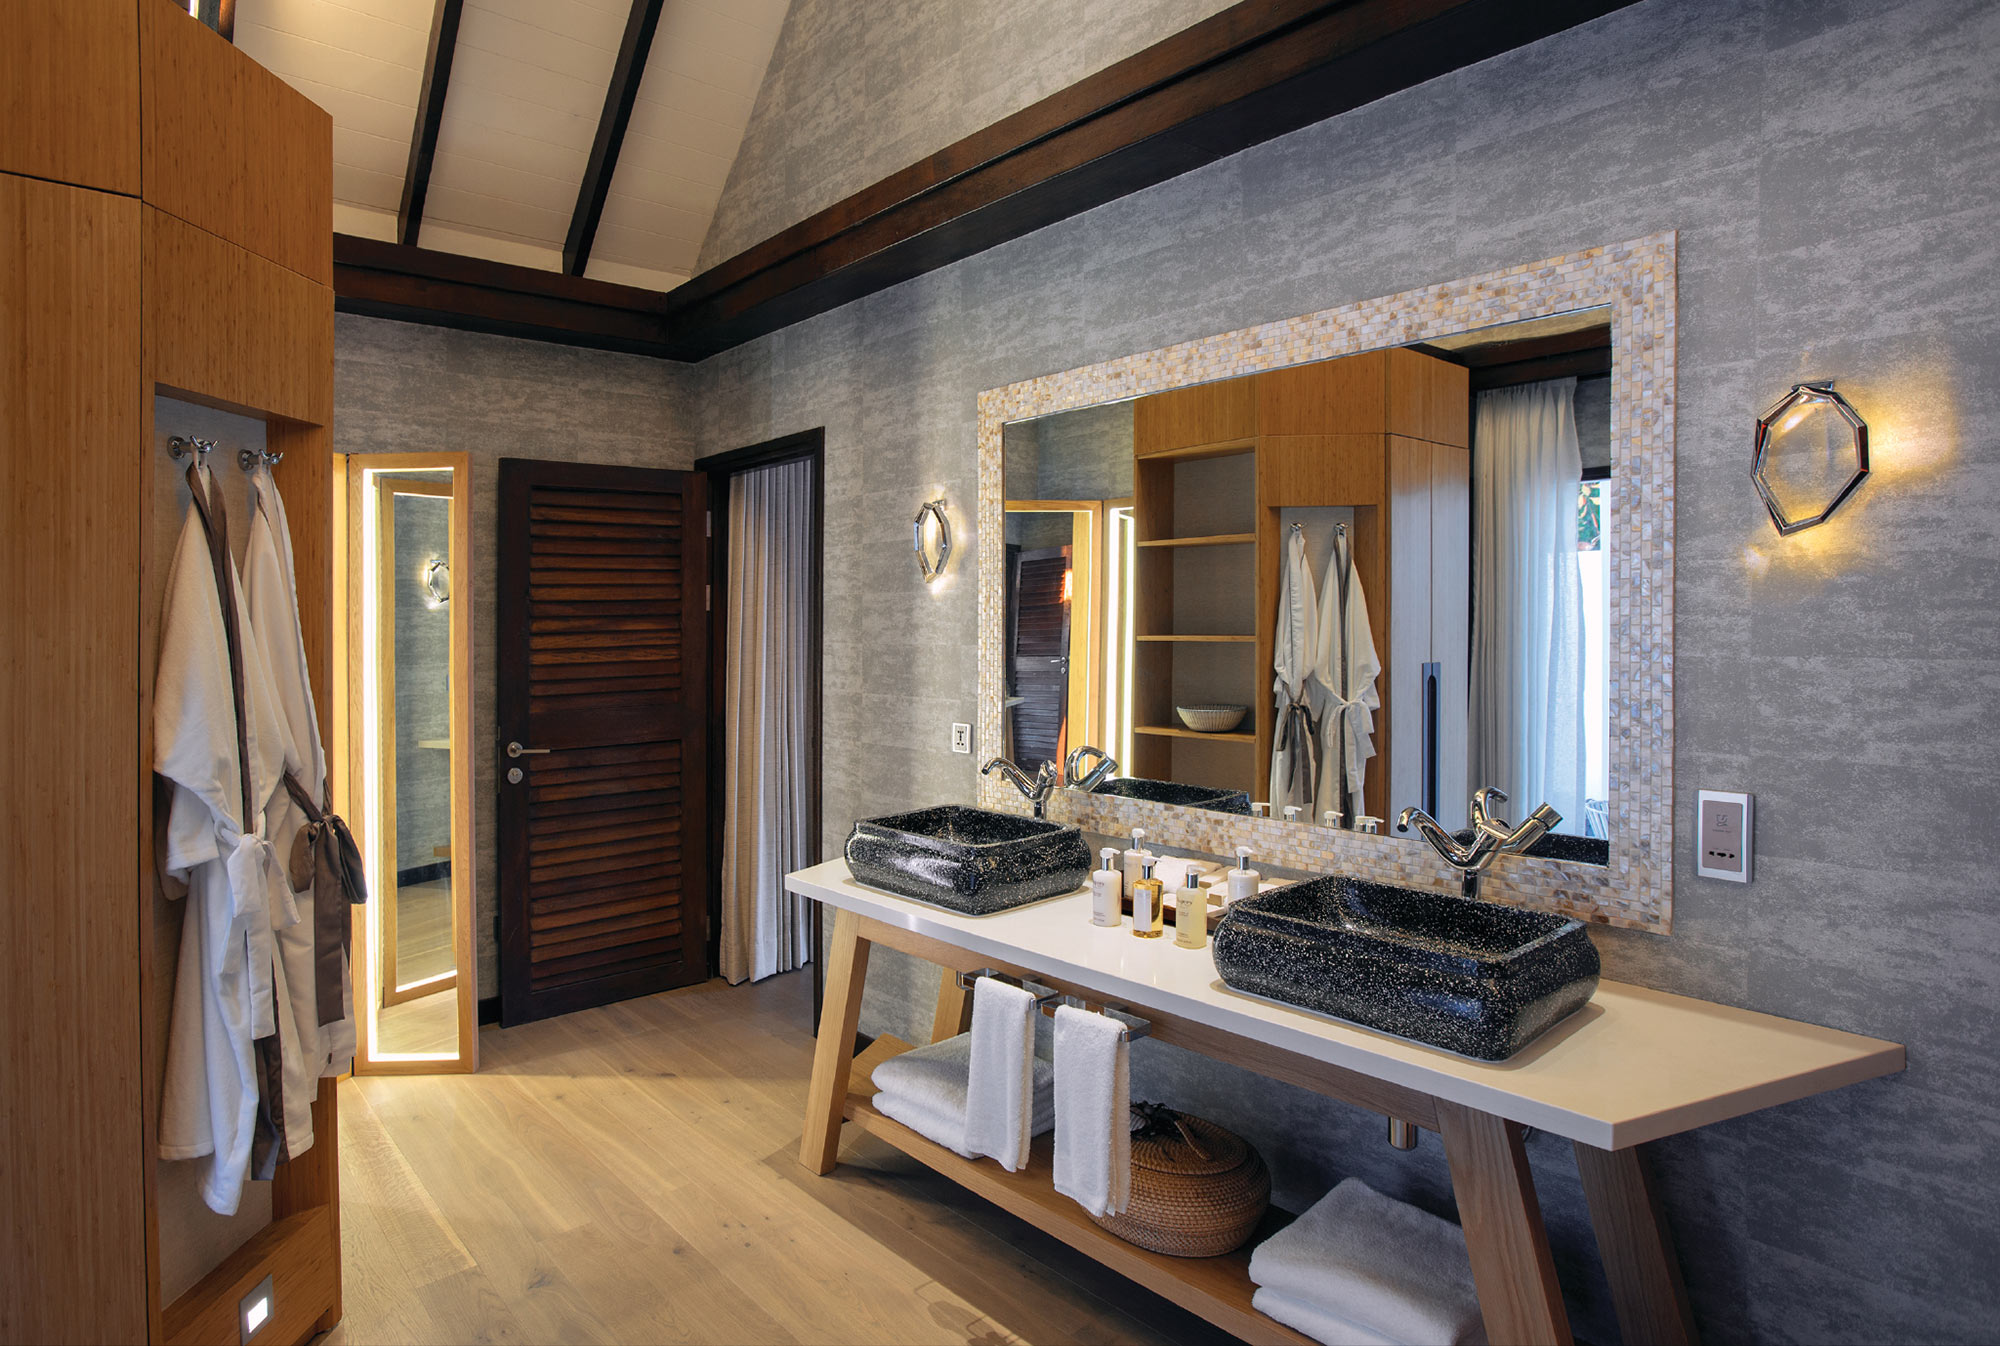 OZEN-BY-ATMOSPHERE---EARTH-VILLA-BATHROOM-INTERIOR-01_preview.jpg